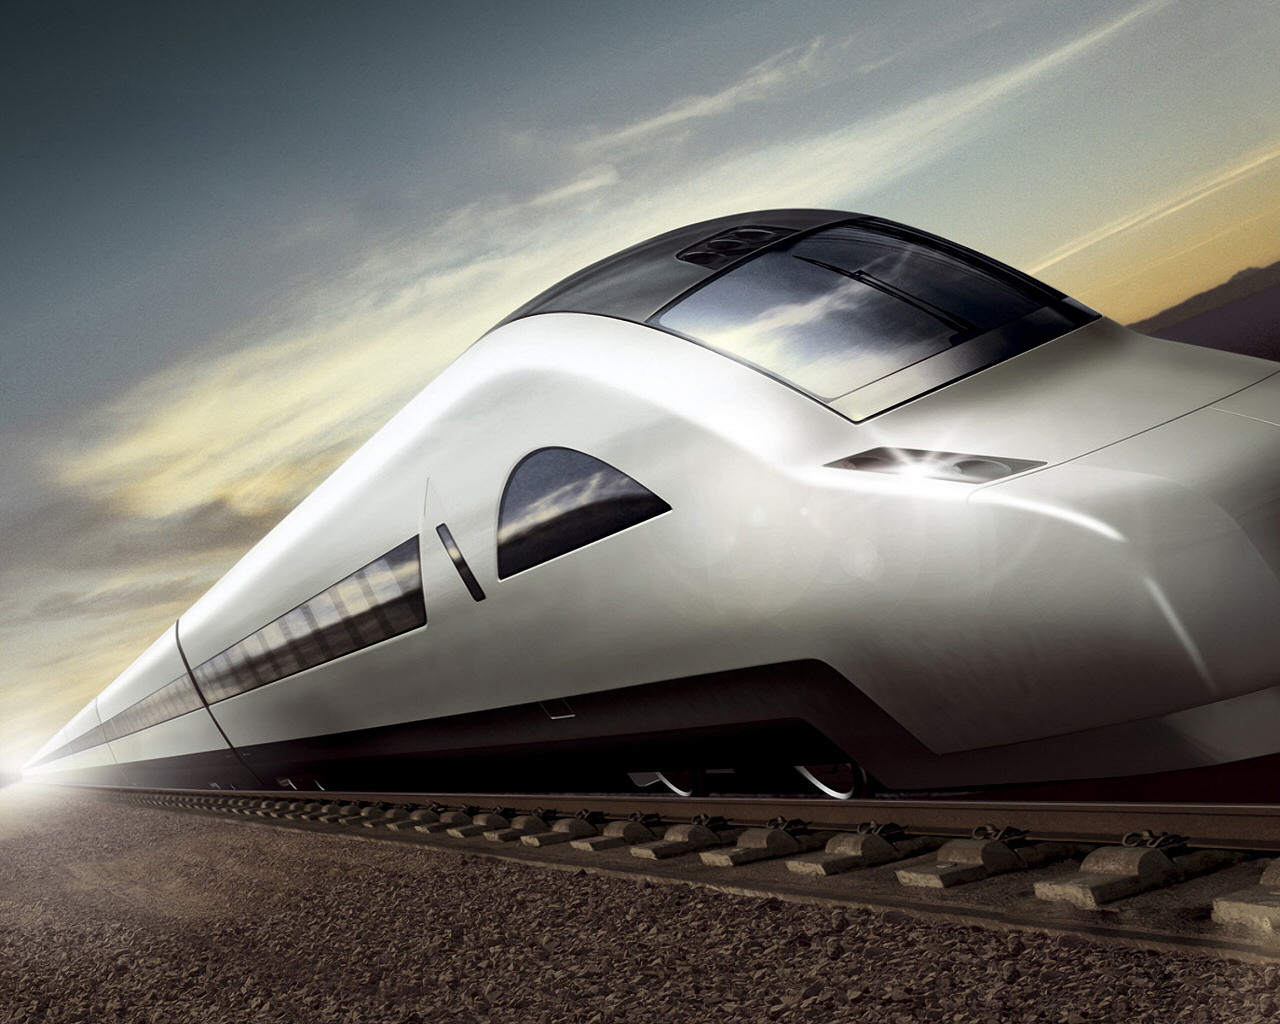 Fast train wallpapers